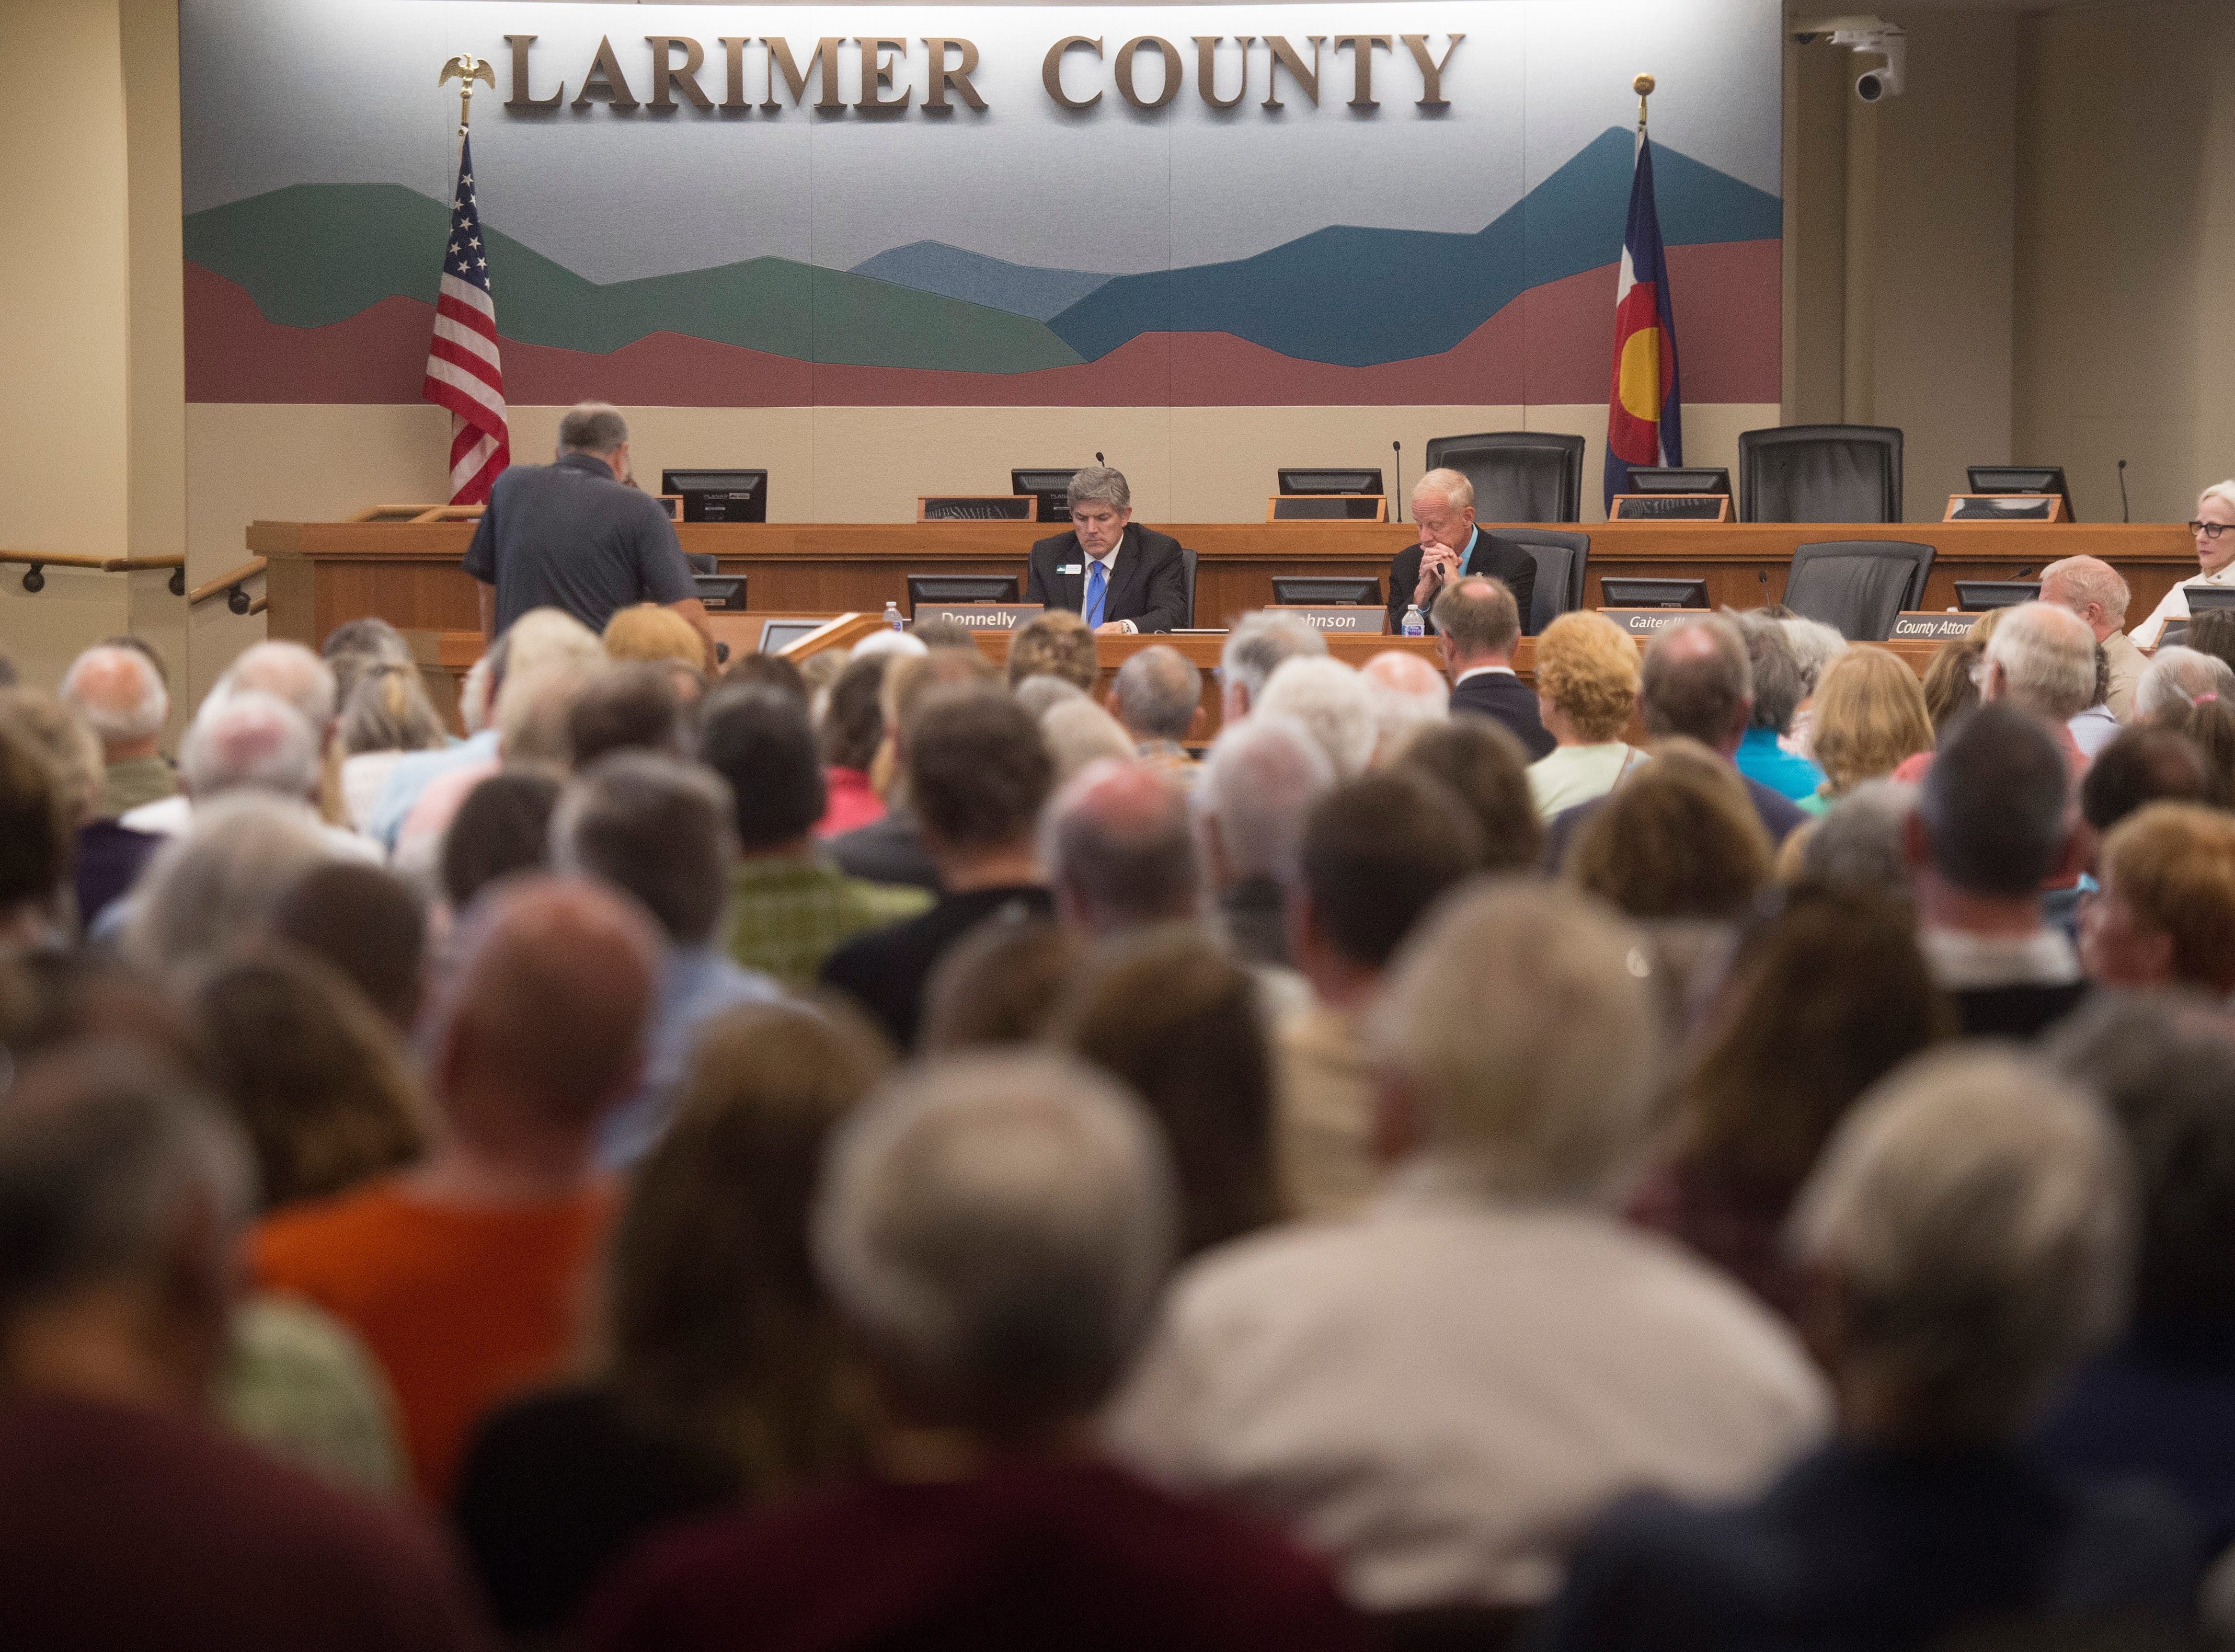 People pack a room as Larimer County Commissioners hear public comment during a hearing to permit or deny a proposed water pipeline for the City of Thornton on Tuesday, July 23, 2018.